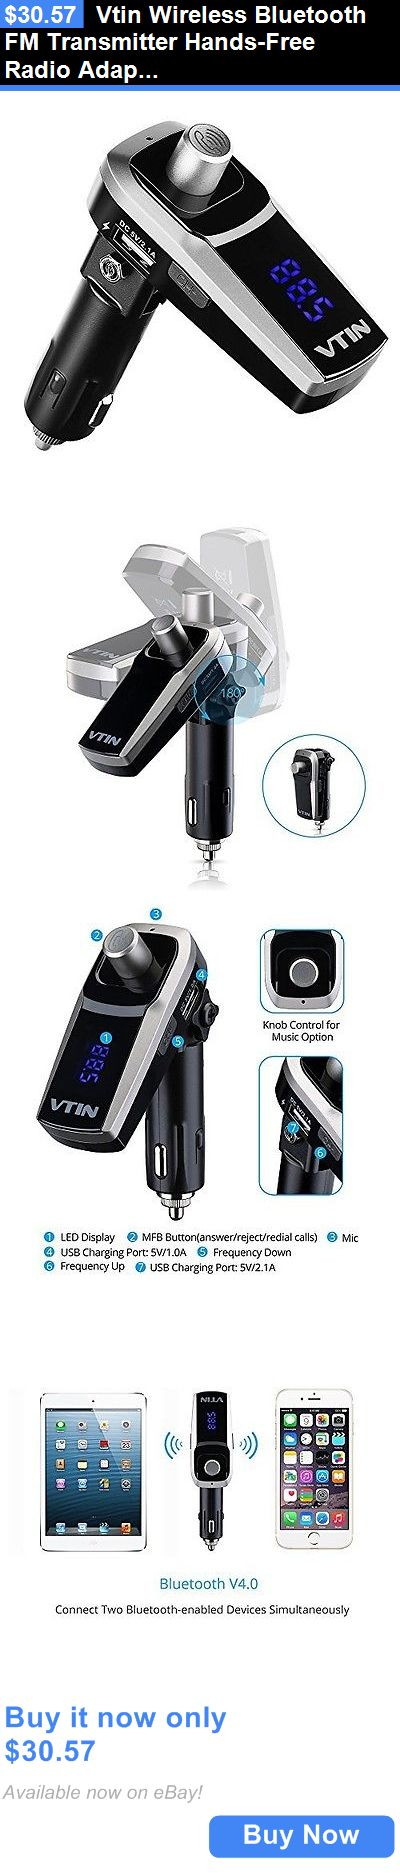 FM Transmitters: Vtin Wireless Bluetooth Fm Transmitter Hands-Free Radio Adapter Car Kit With BUY IT NOW ONLY: $30.57